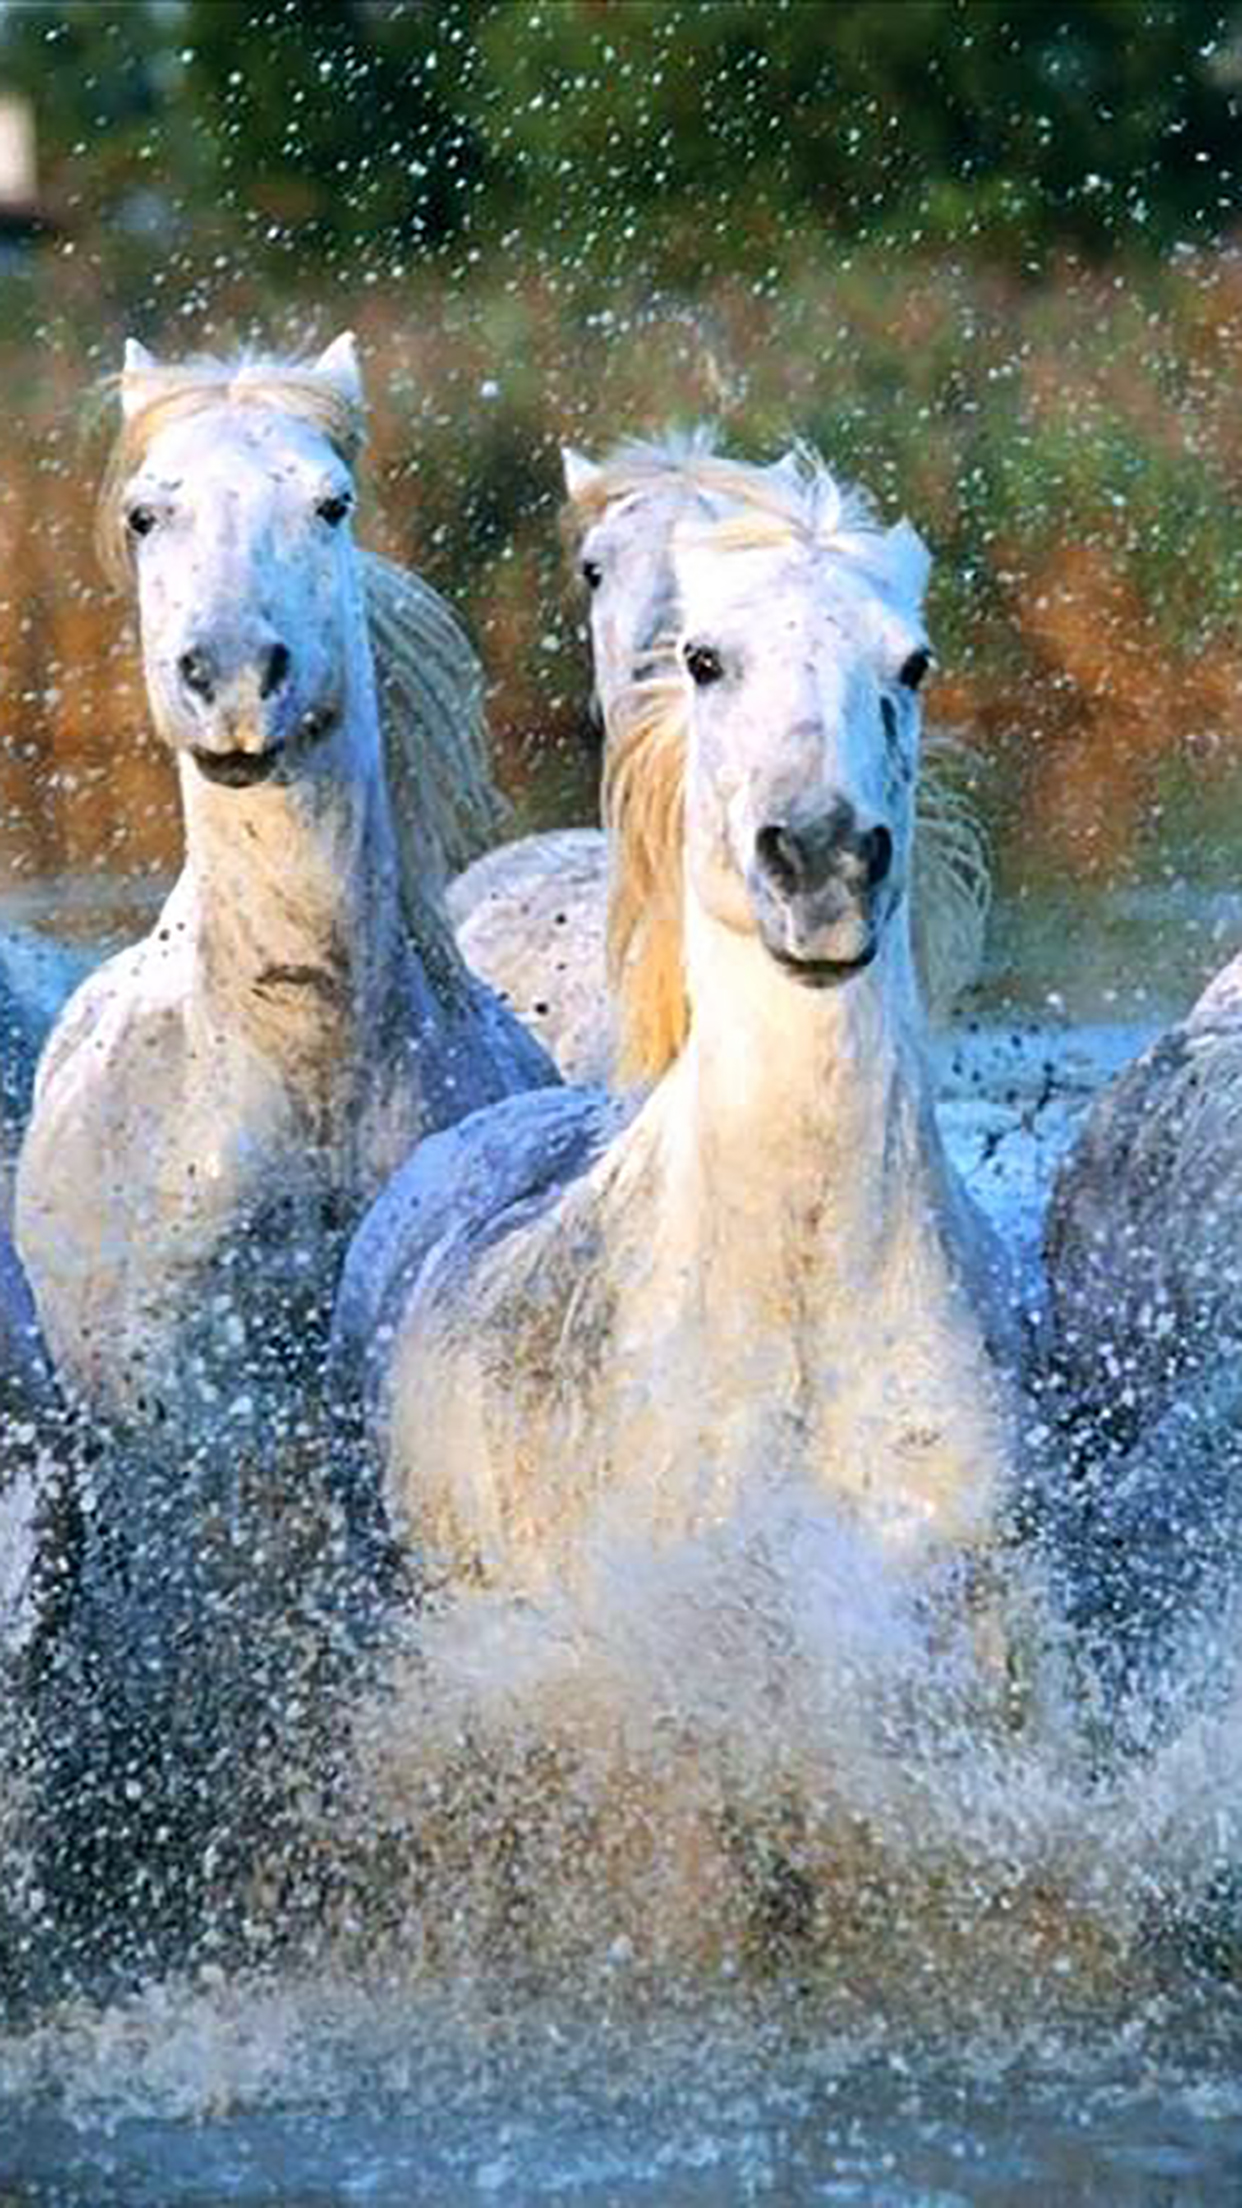 Camargue Horses Wallpaper For Iphone X 8 7 6 Free Download On